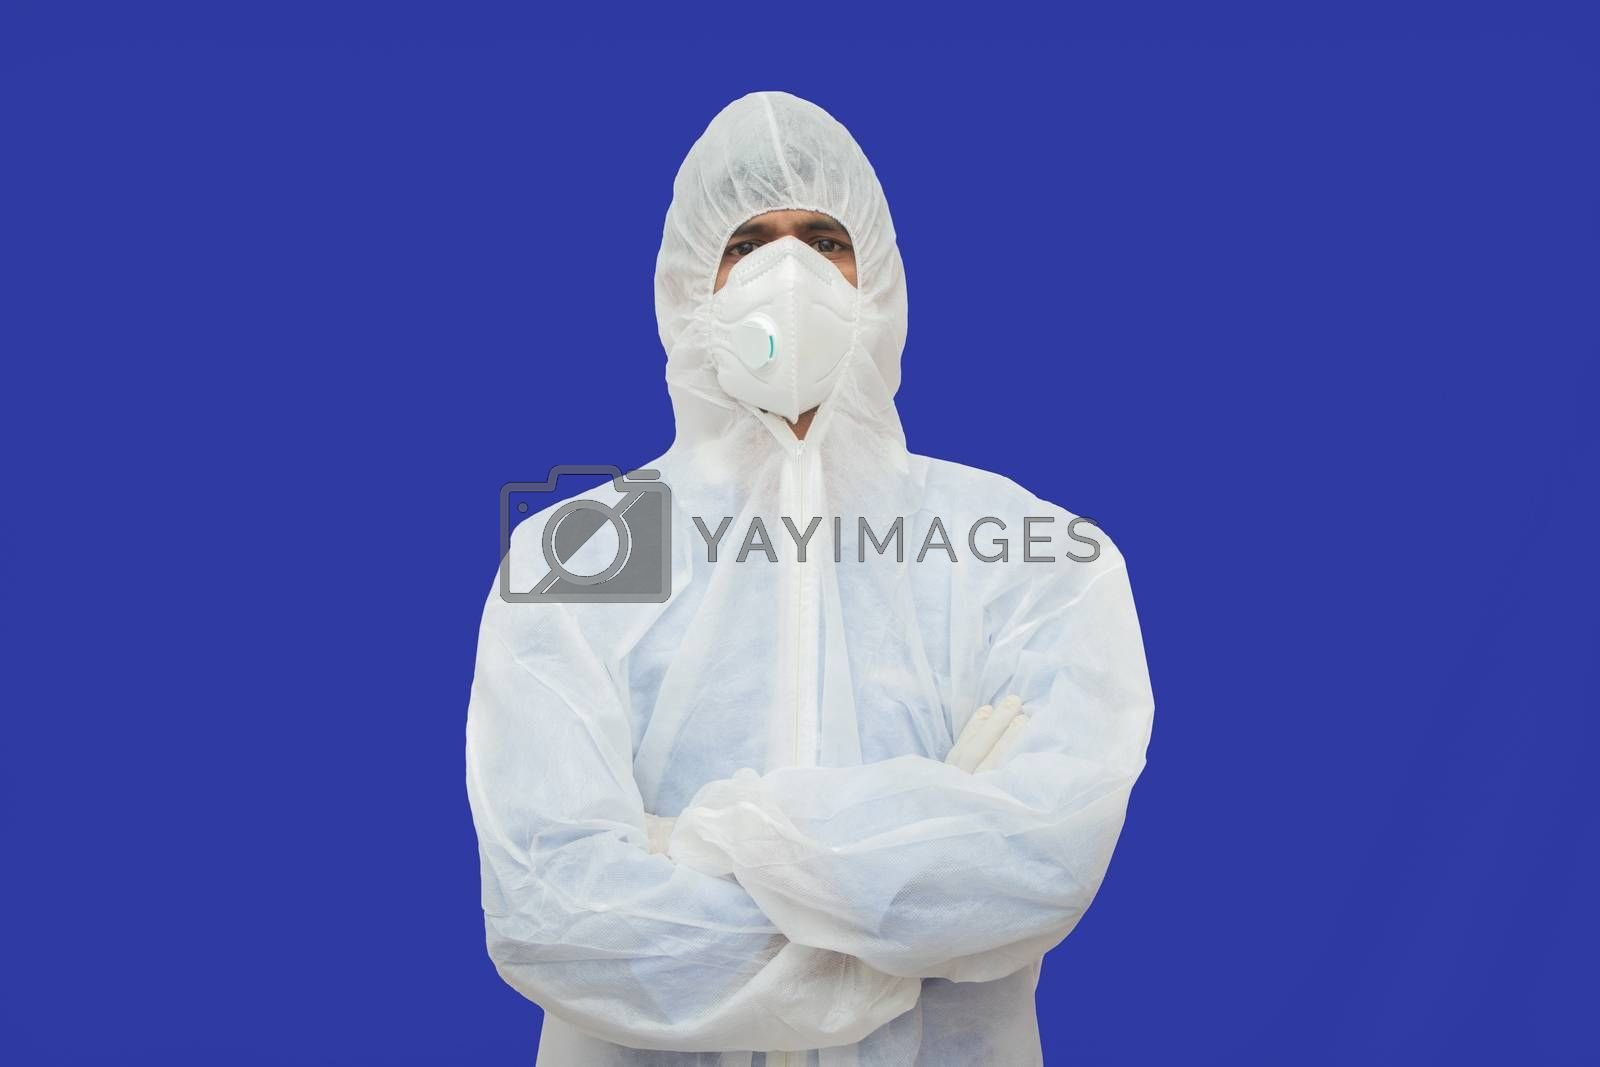 Confident epidemiologist in hazmat suit with medical face mask - Concept to fight covid-19 or coronavirus outbreak by controlling virus spread. by lakshmiprasad